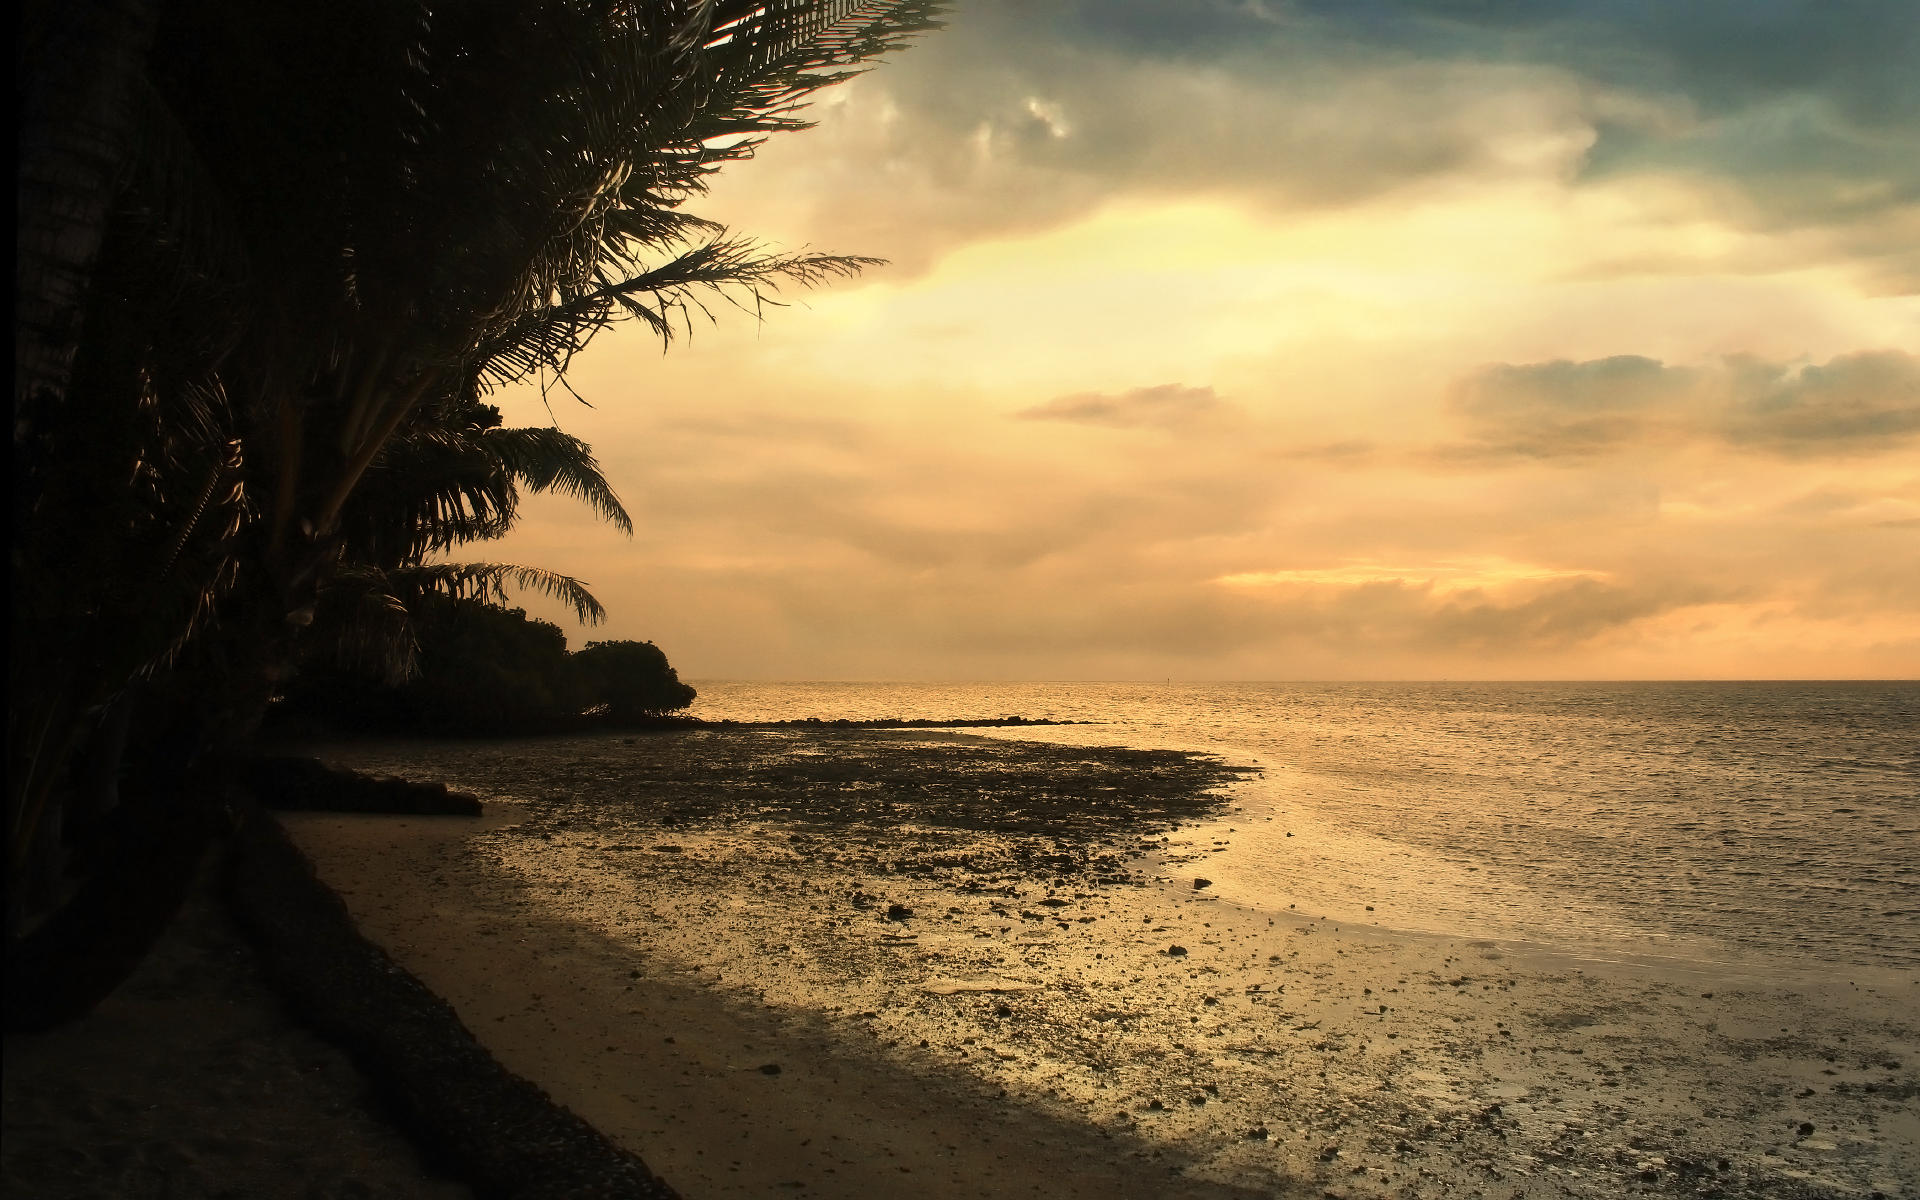 Hd Background Beach Images For Photoshop Editing Blogs Nature Wallpaper